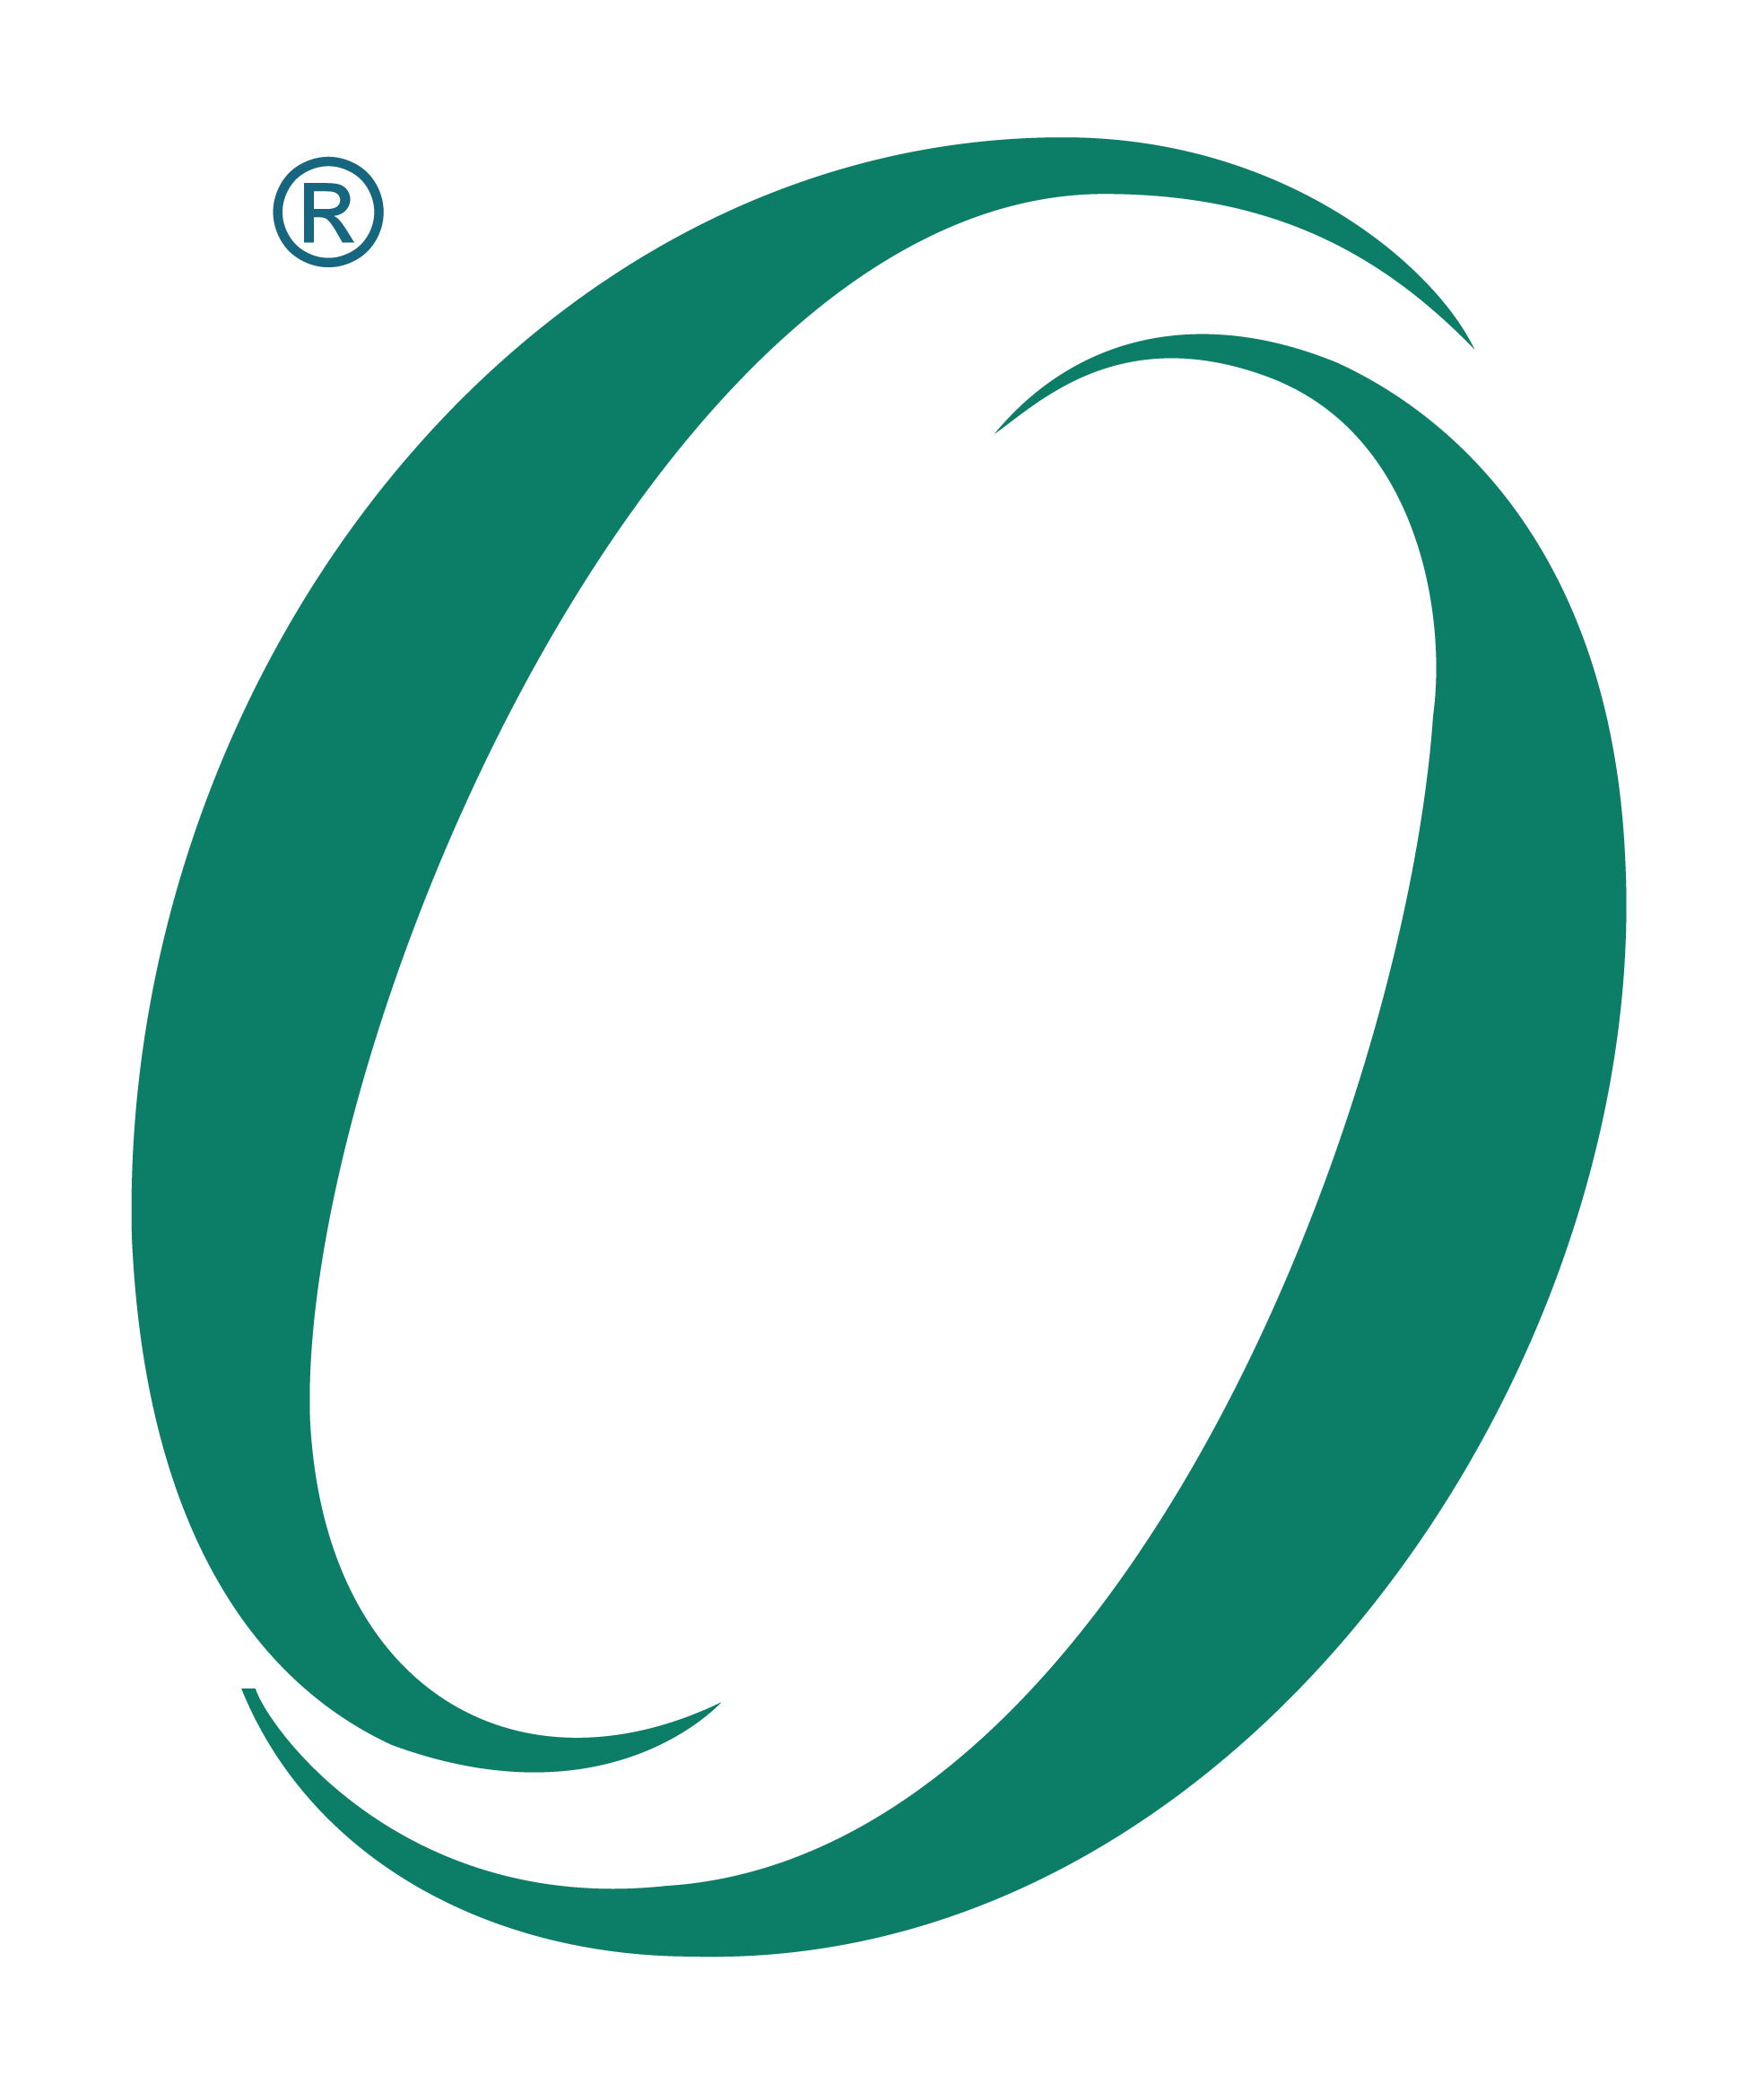 The Open Group Blog Volume 4 Issue 1 (January 2016 – December 2016)